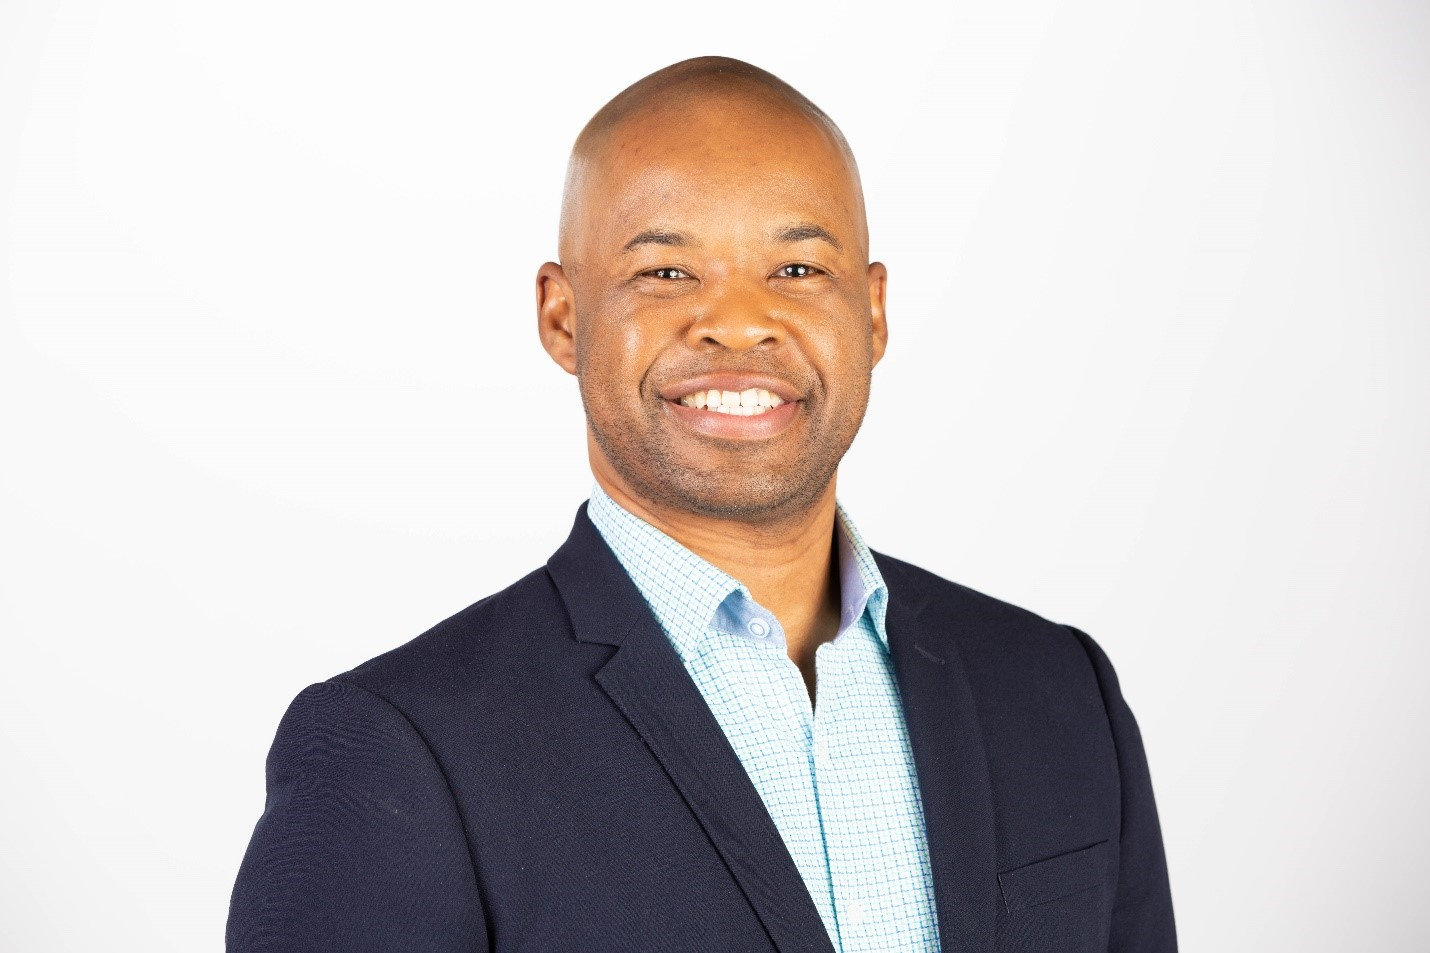 Jeff Davis '12, Founder & CEO of JD2 Consulting Group